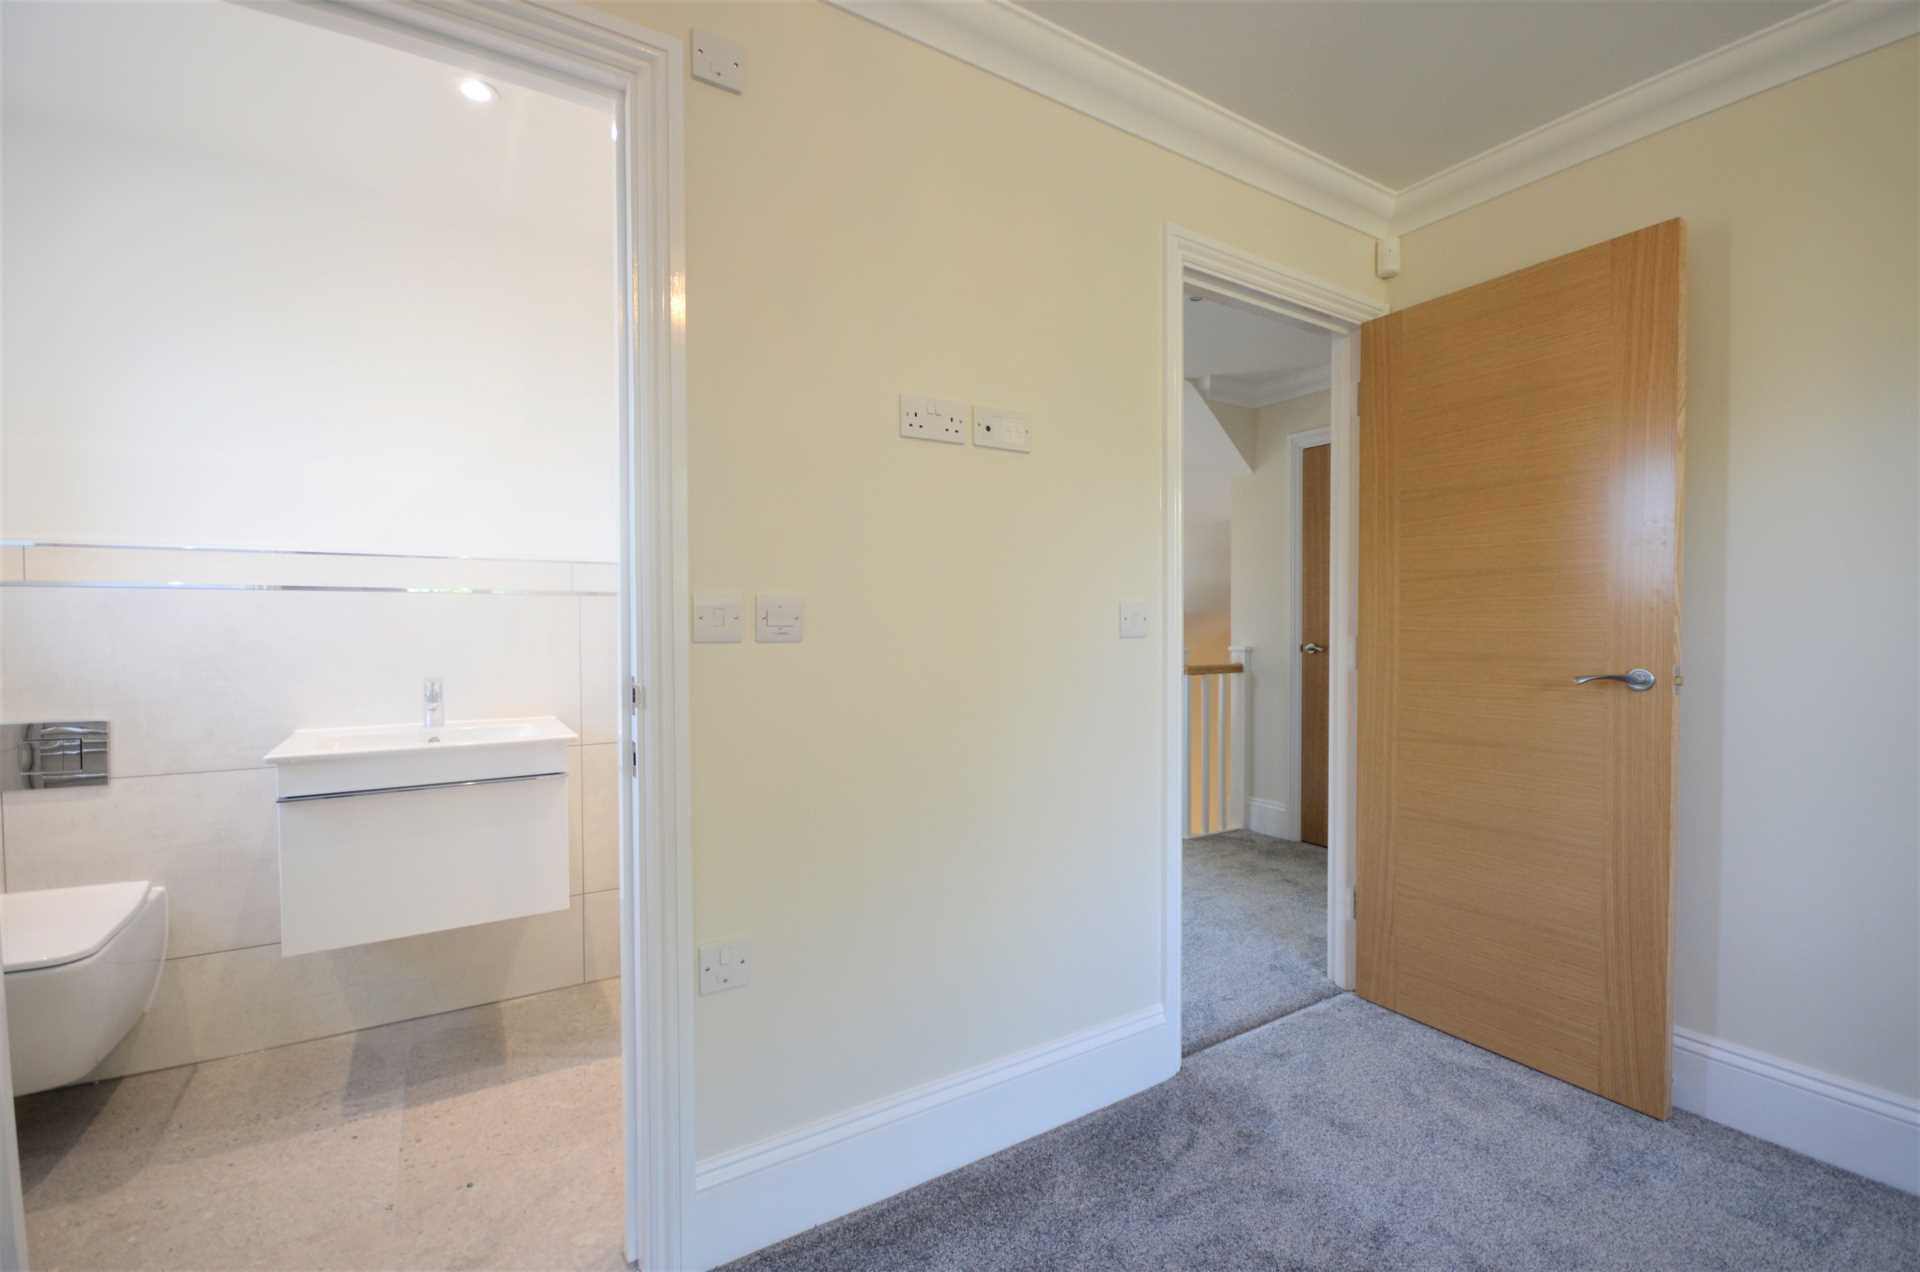 Norsey View Drive, Billericay, Image 14